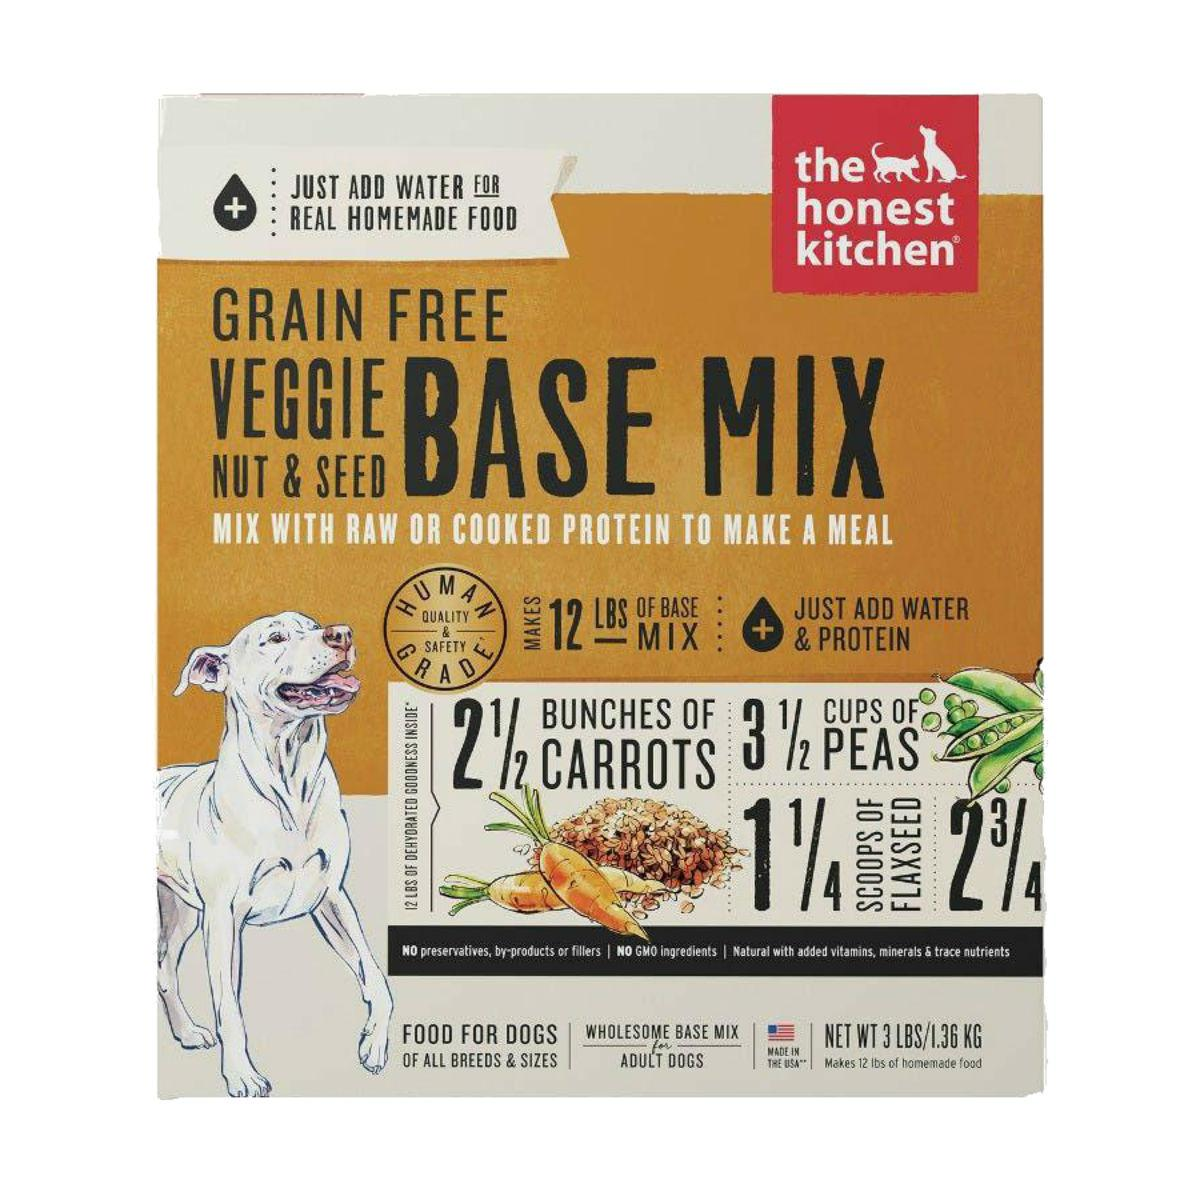 The Honest Kitchen Dehydrated Grain Free Veggie, Nut & Seed Base Mix Dog Food